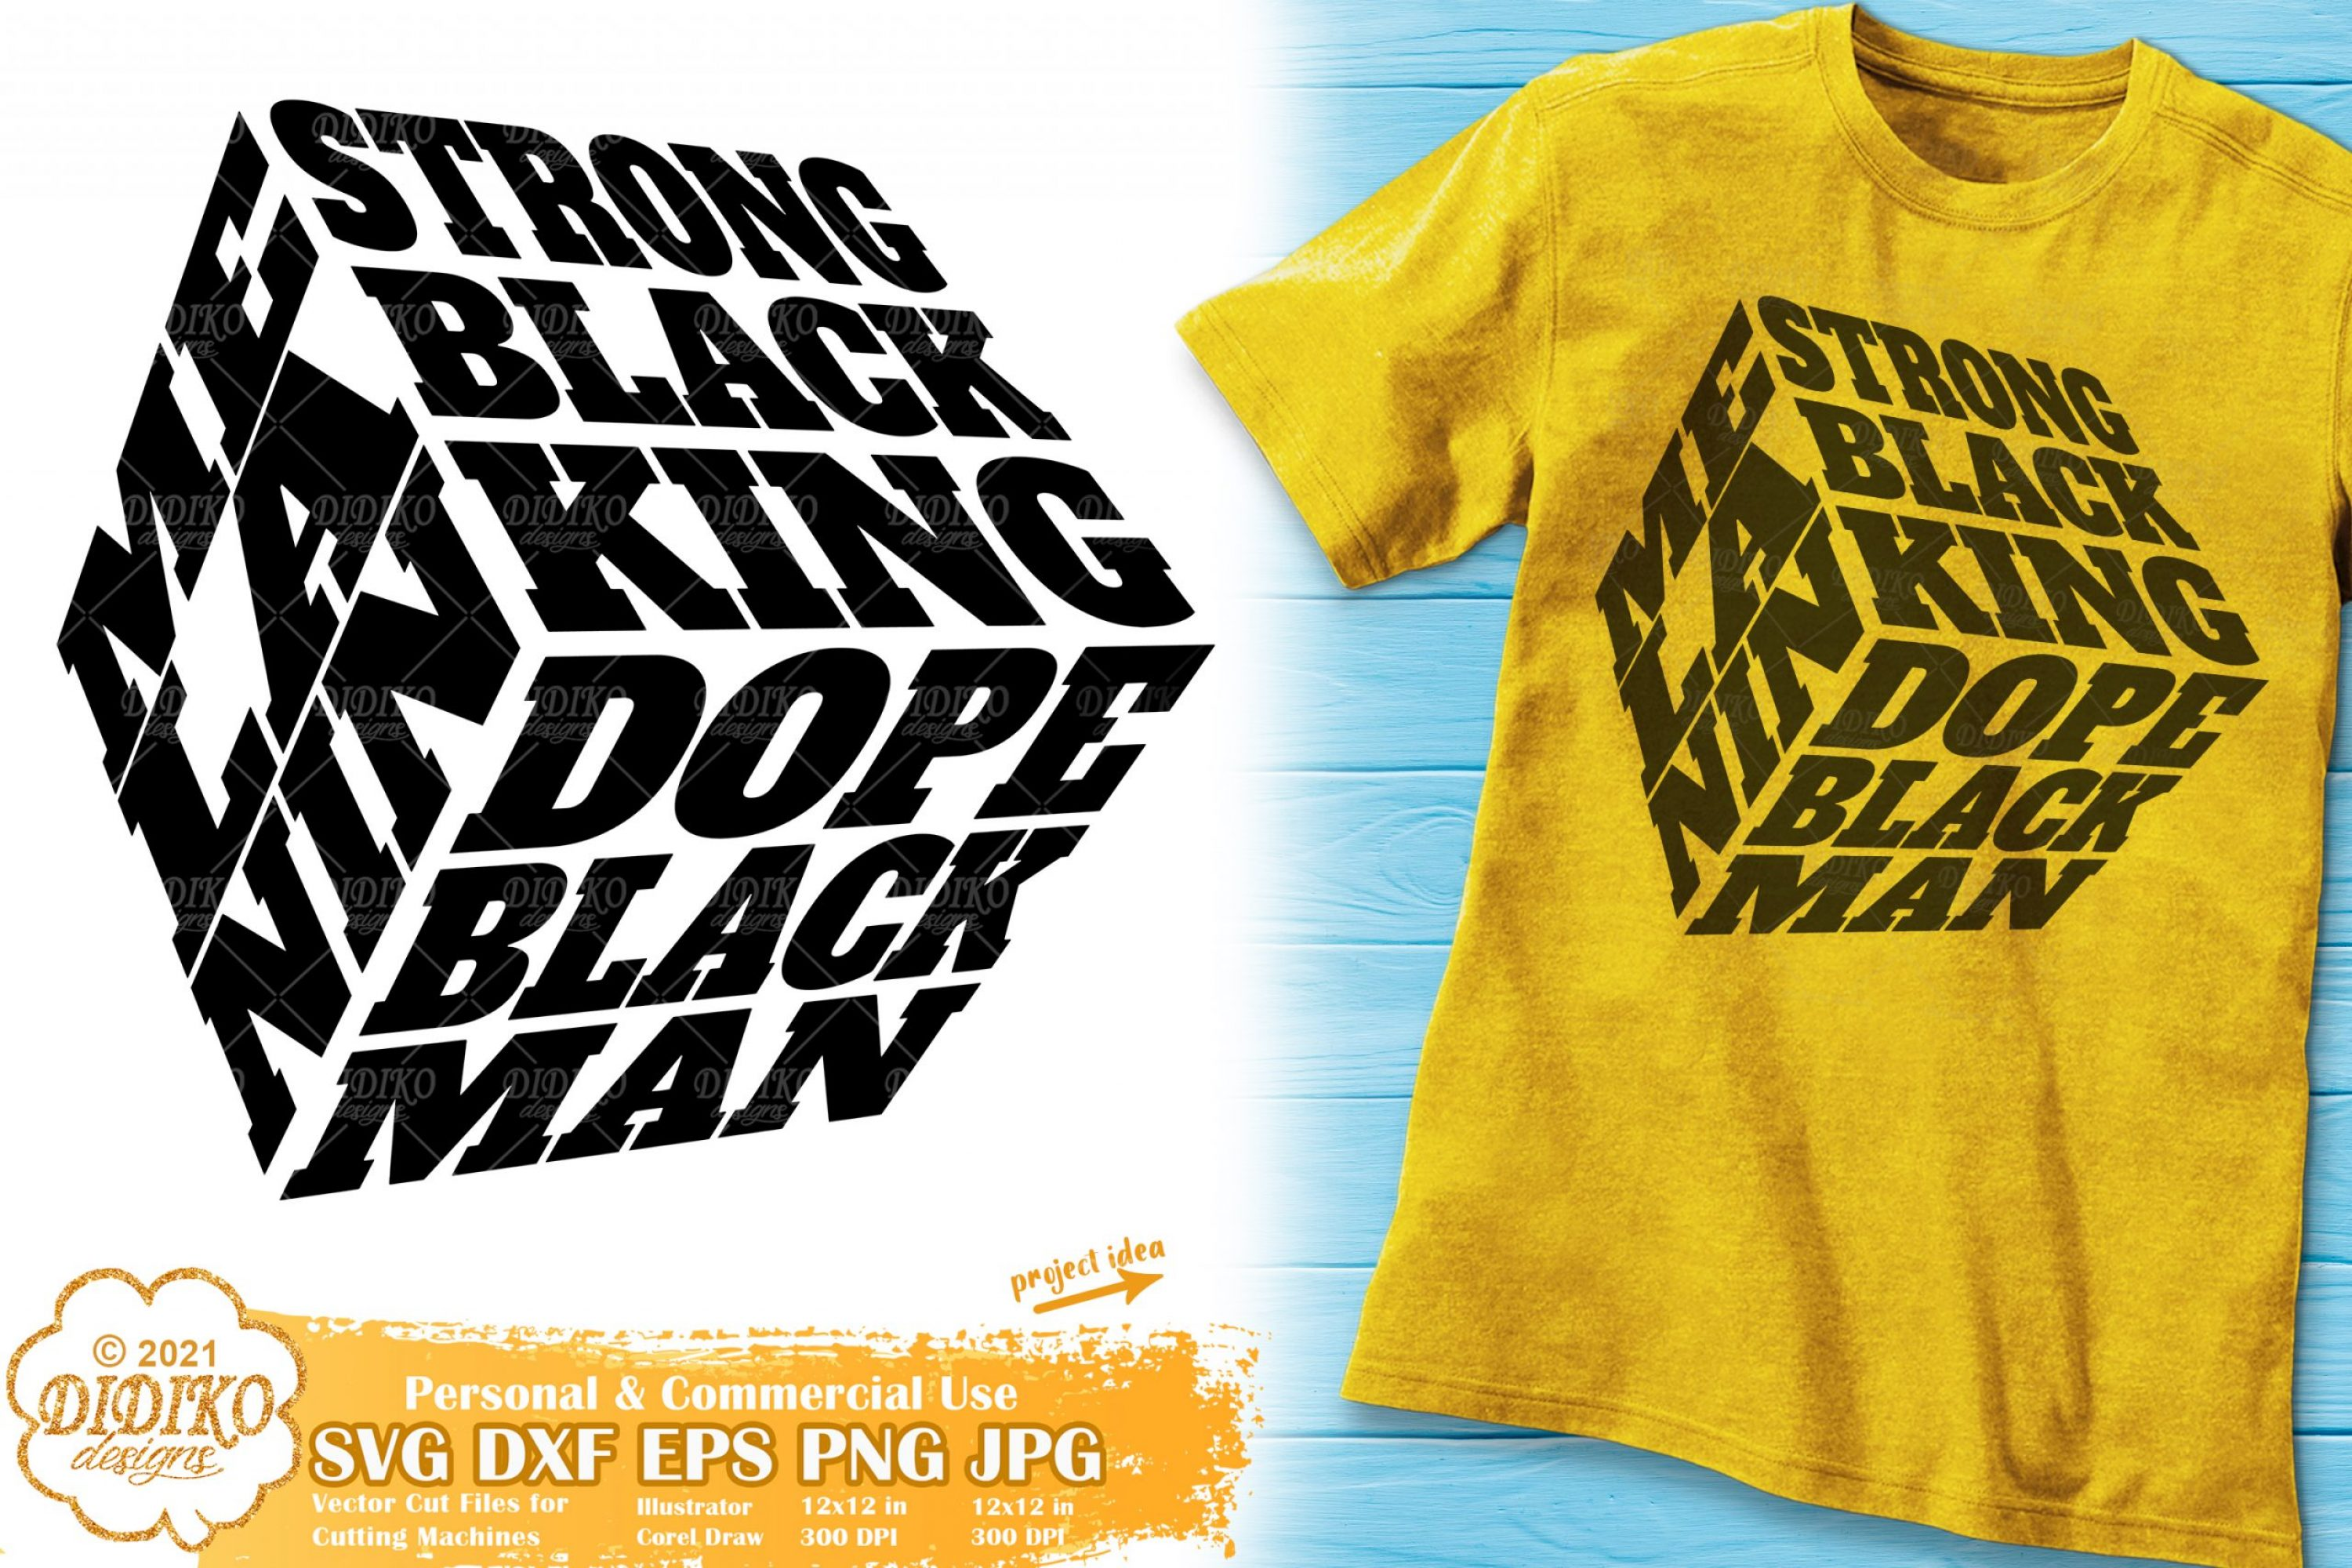 Strong Black King SVG, Dope Black Man Svg, Melanin